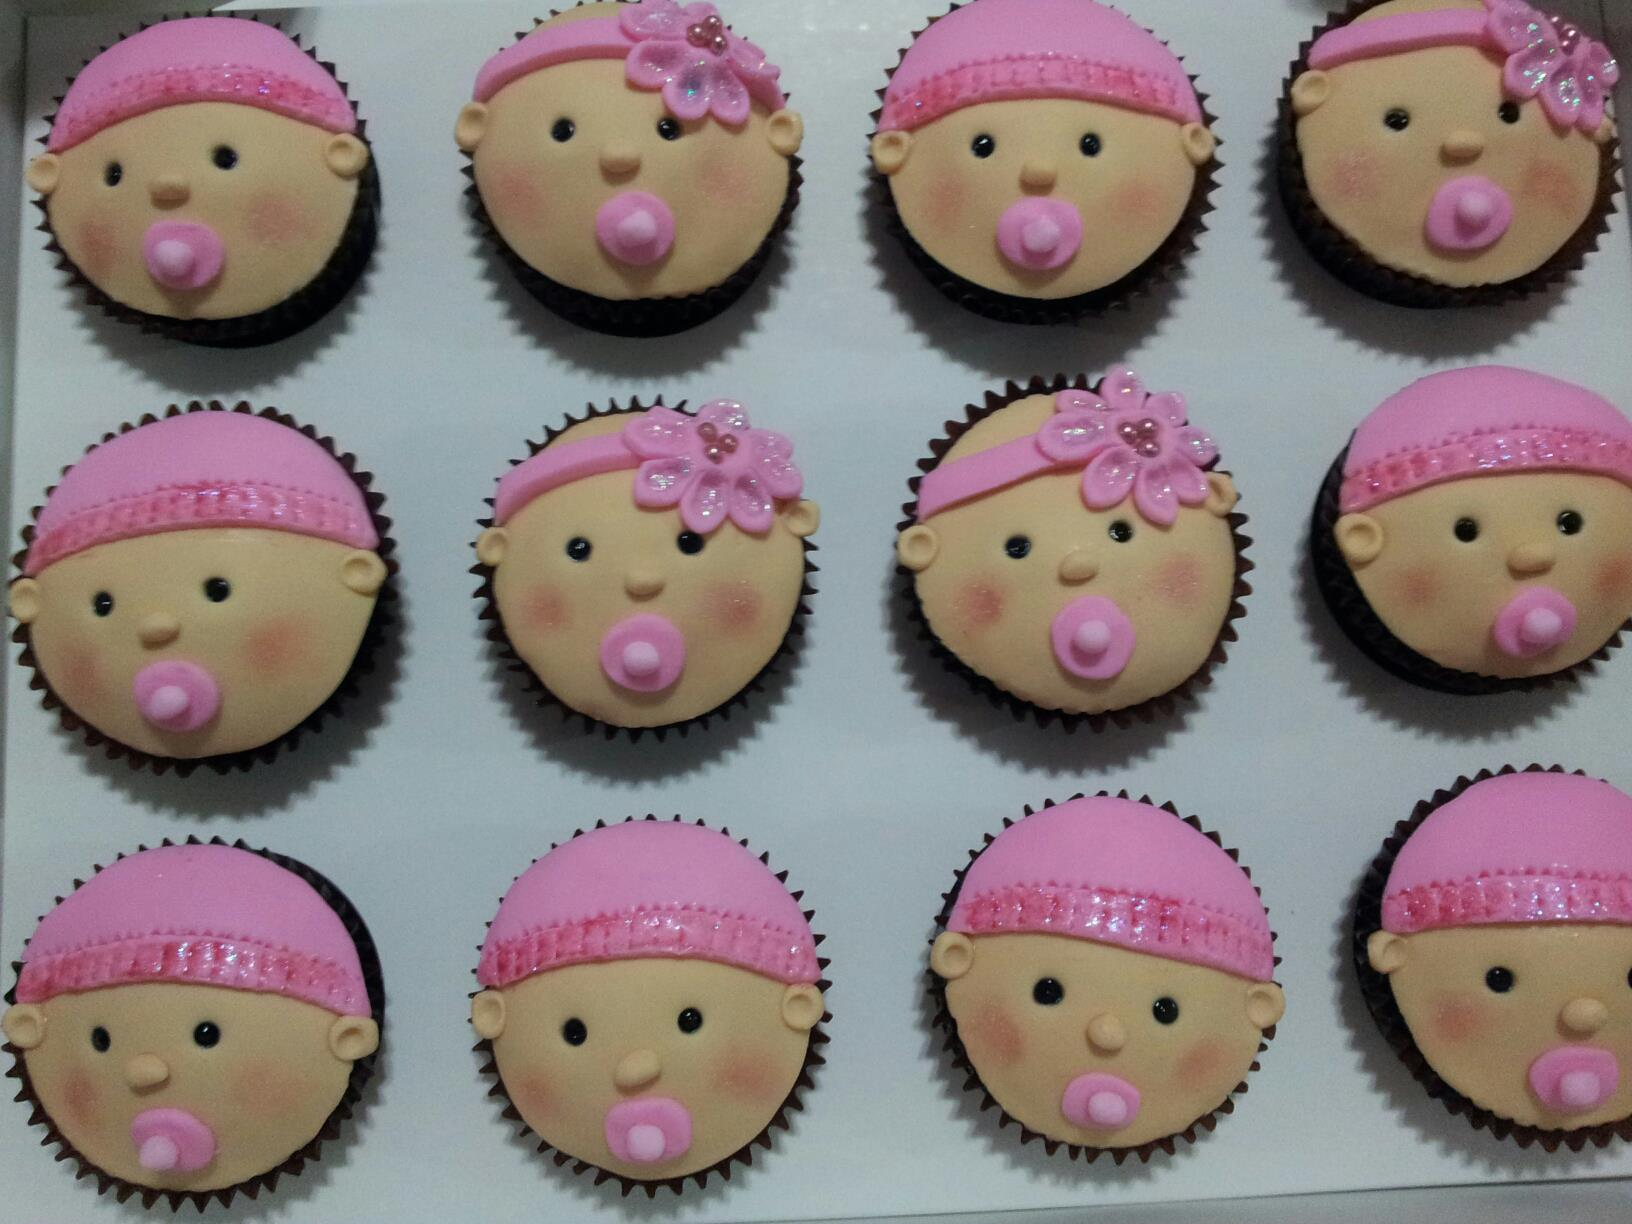 Baby Shower Food Ideas: Baby Shower Ideas Cupcakes